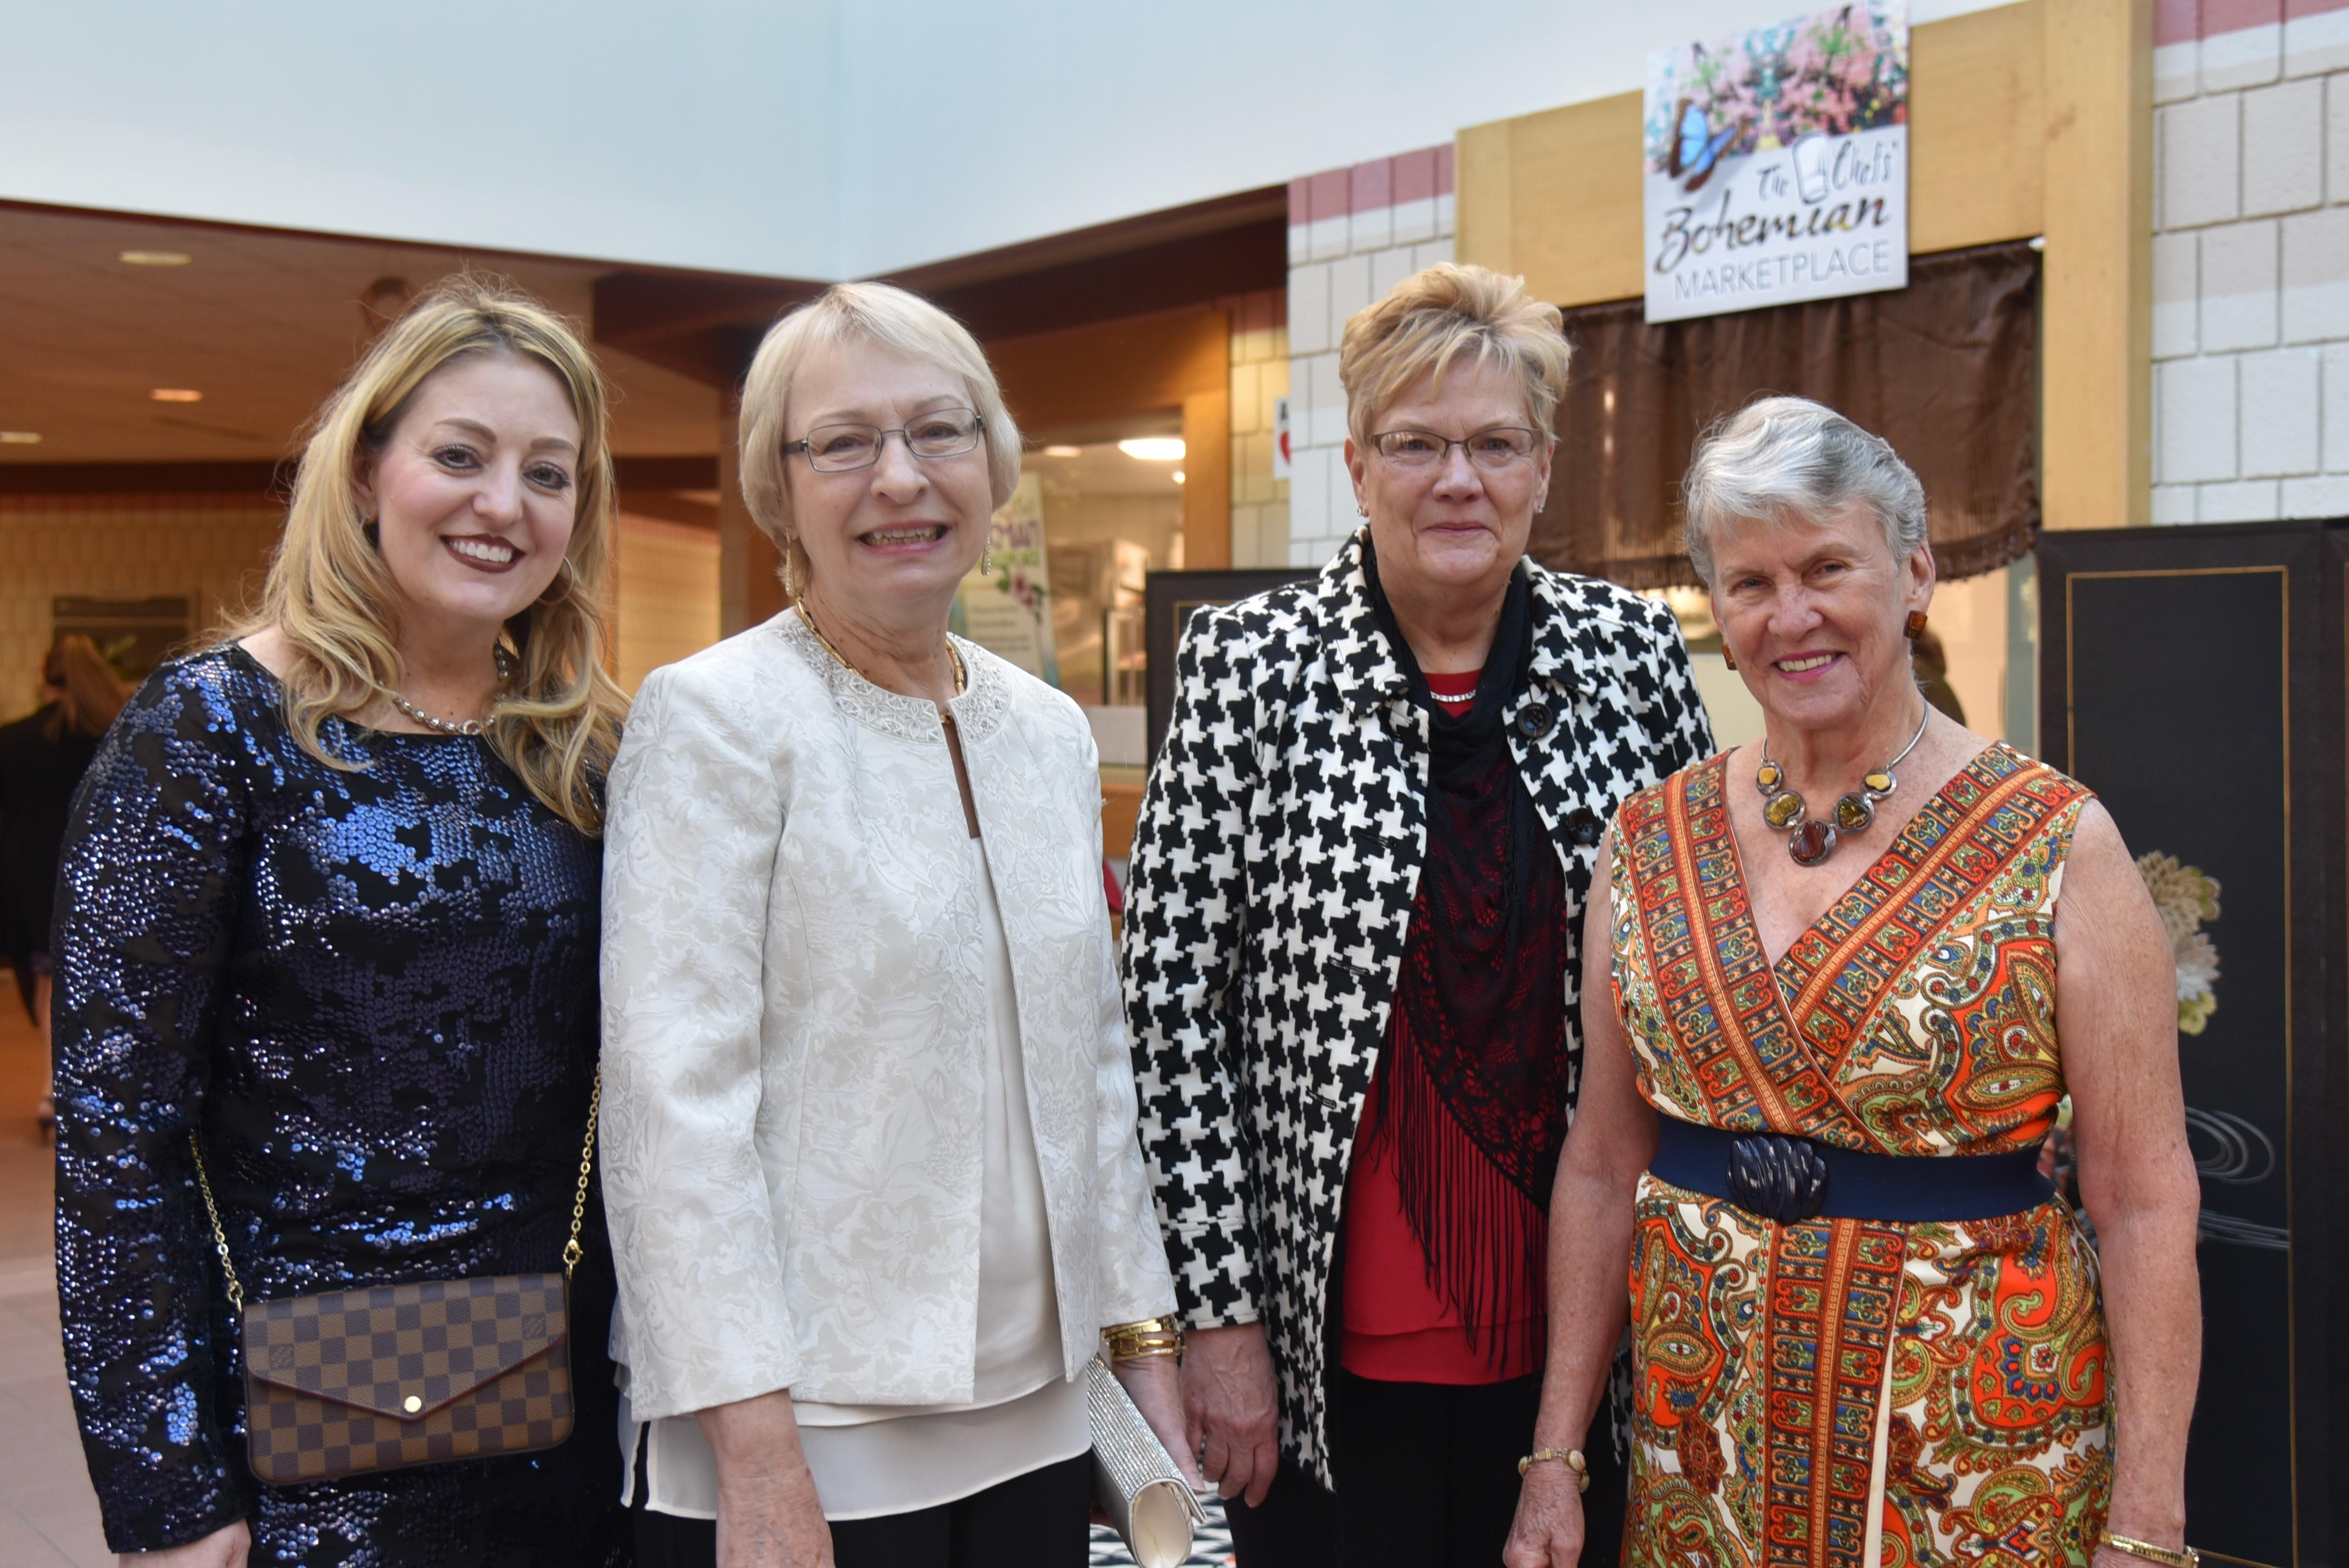 Among the guests enjoying  The Chefs' Marketplace were (from left): Marcy Sloneker, foundation board member; Bridget Johnston, college trustee and foundation board member; Debra Woods, executive director, Westmoreland Educational Foundation; and Dr. Barbara Ferrier, college trustee.